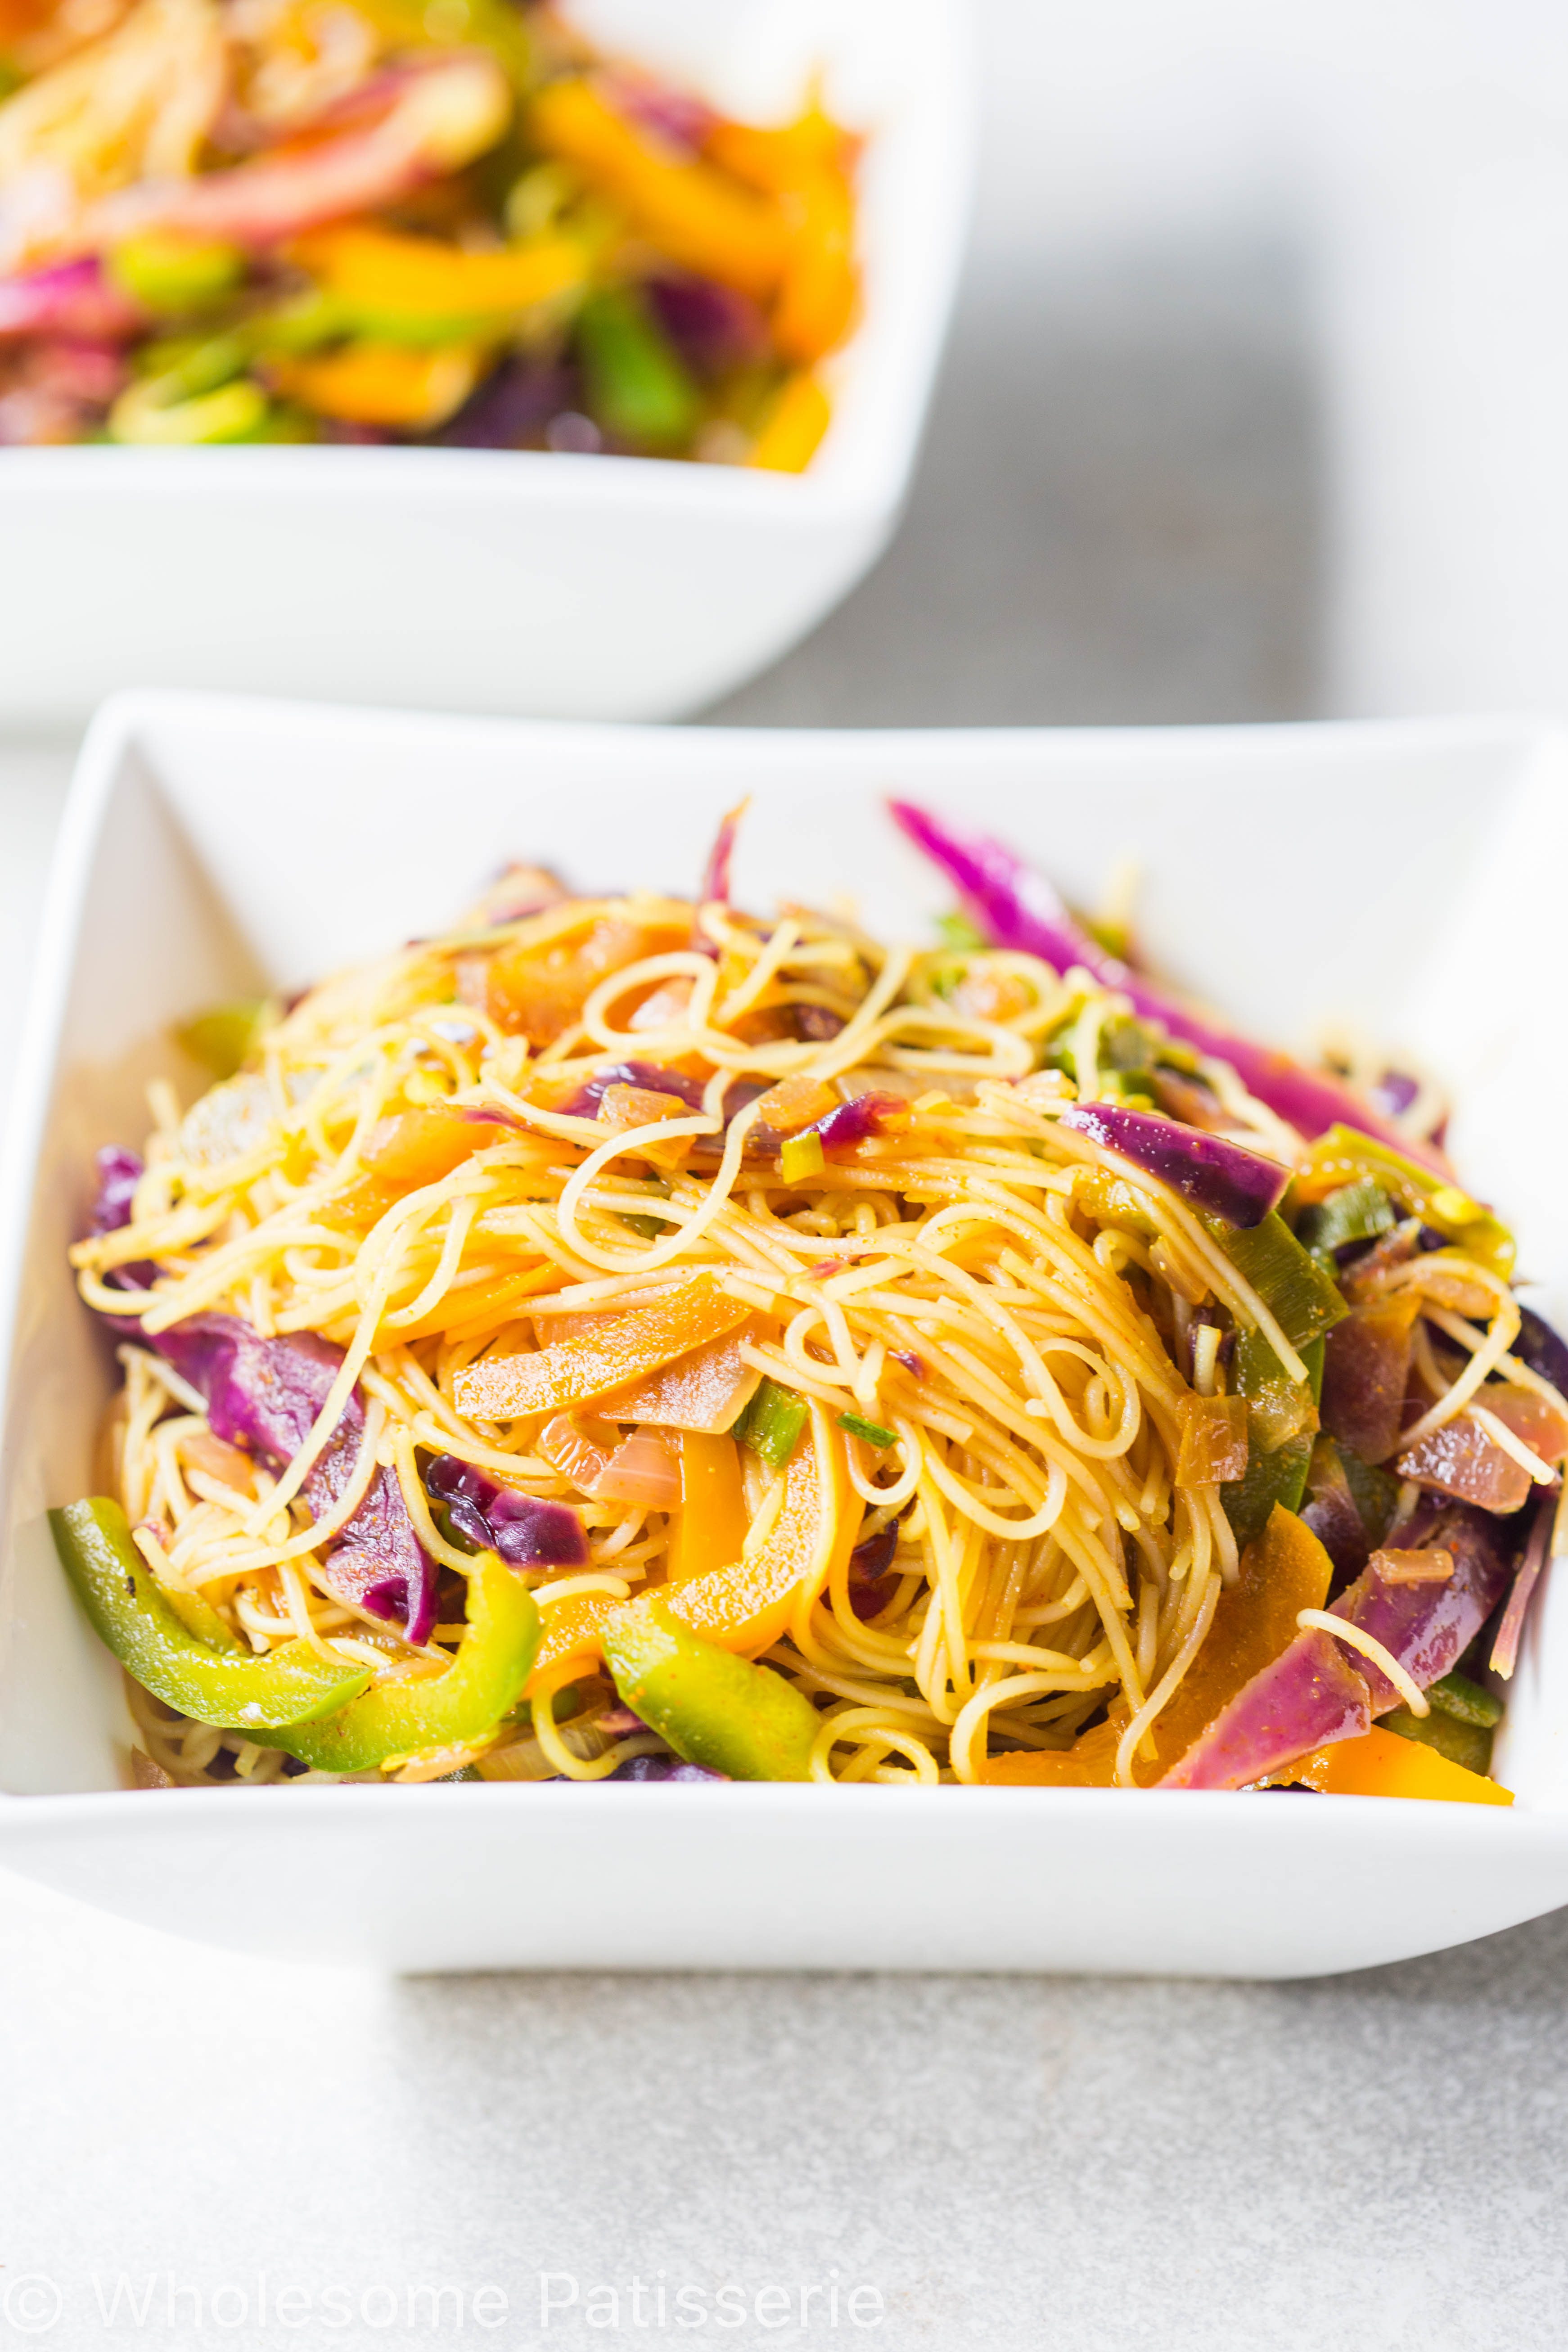 singapore-noodles-gluten-free-delicious-spicy-vegan-noodles-asian-spicy